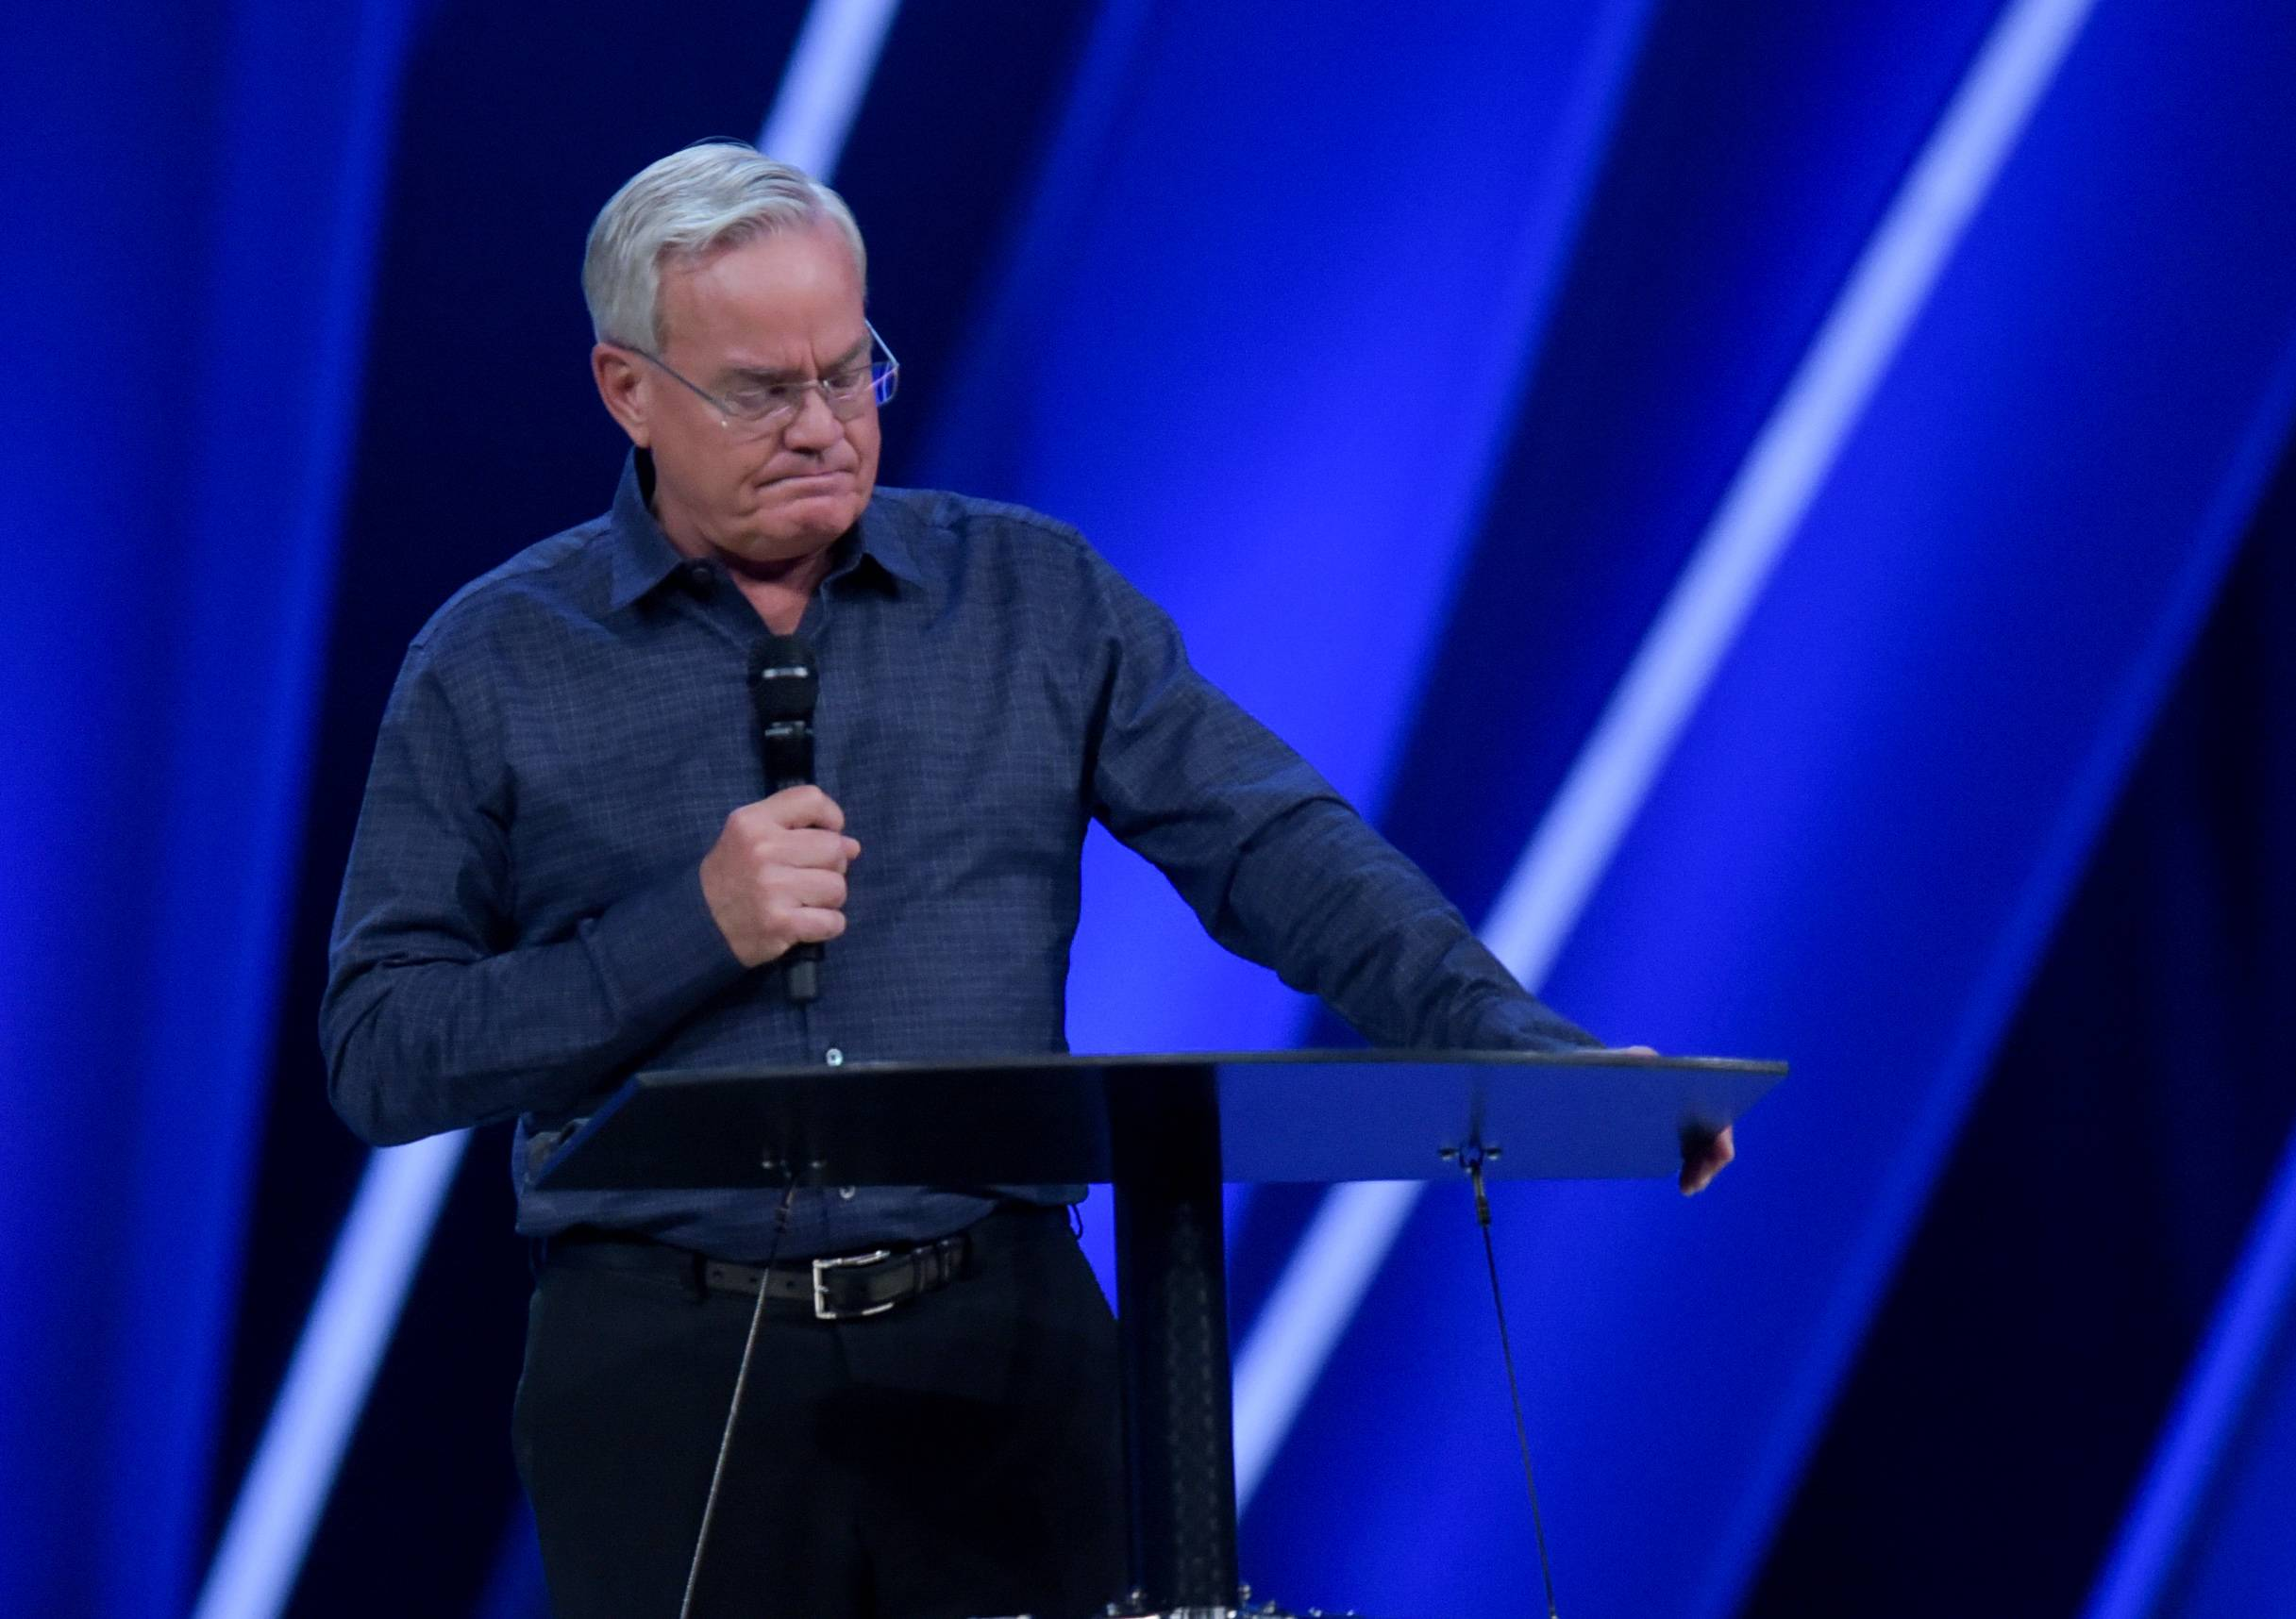 Senior Pastor Bill Hybels of Willow Creek Community Church announced Tuesday that he is stepping down.